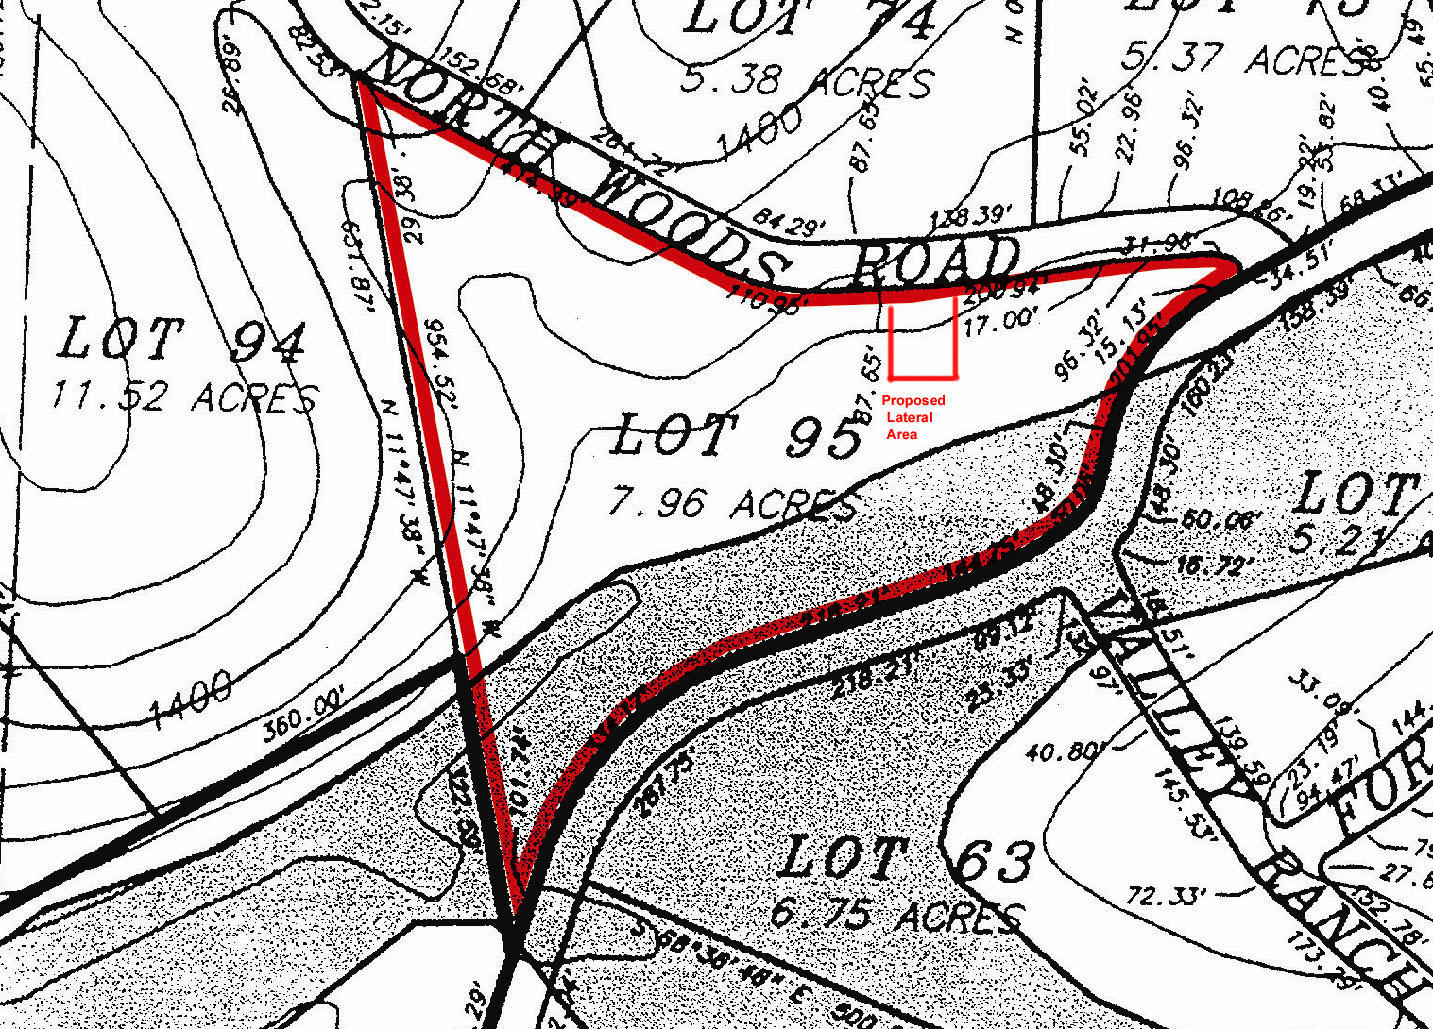 Lot 95 North Woods Road Rogersville, MO 65742